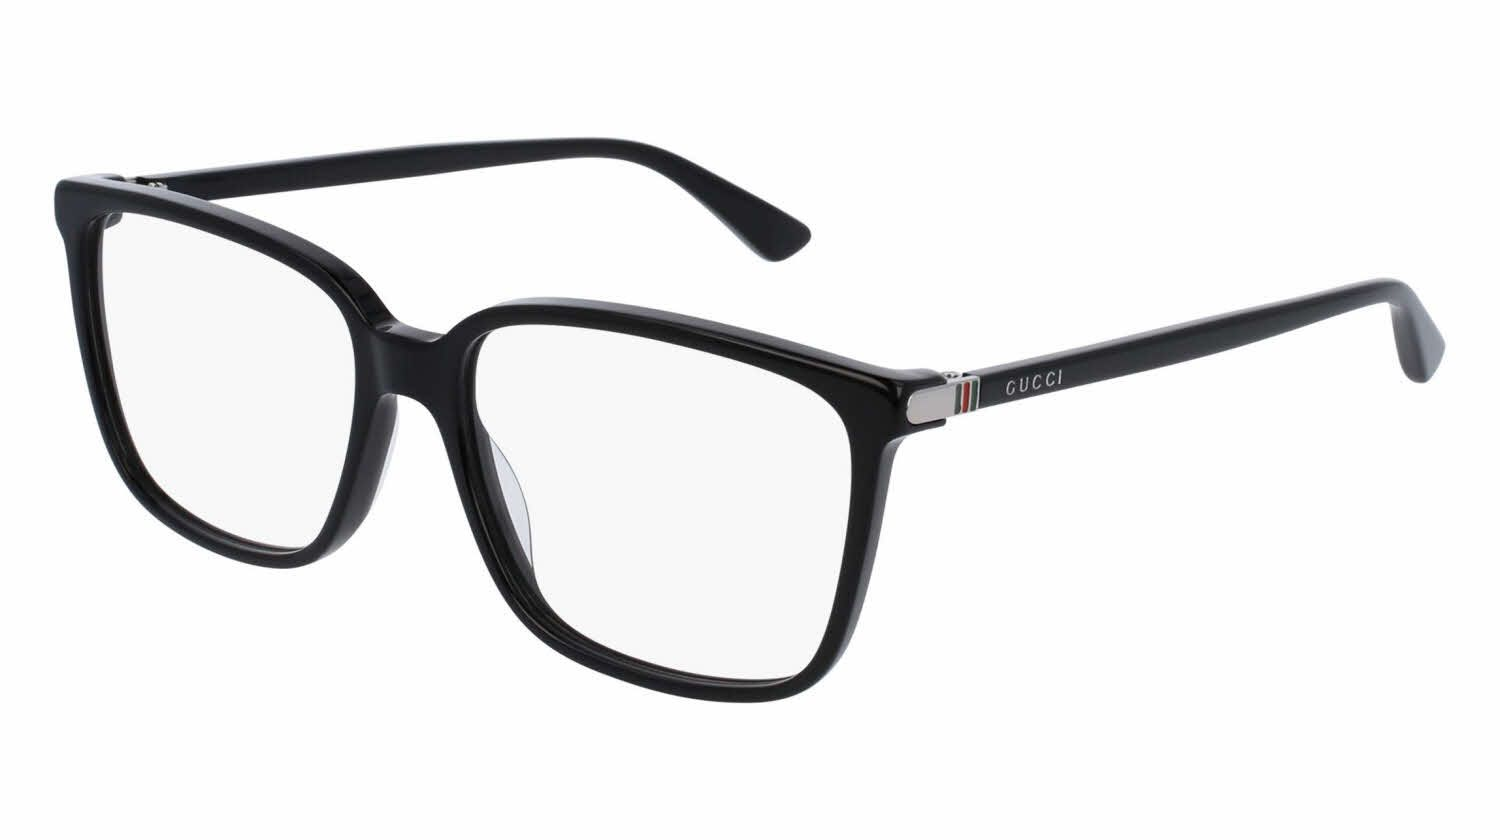 Gucci GG0019O Eyeglasses   50% Off Lenses and Add-Ons! +   Prescription  lenses, designer frame, Price Match Guarantee 15f323310d